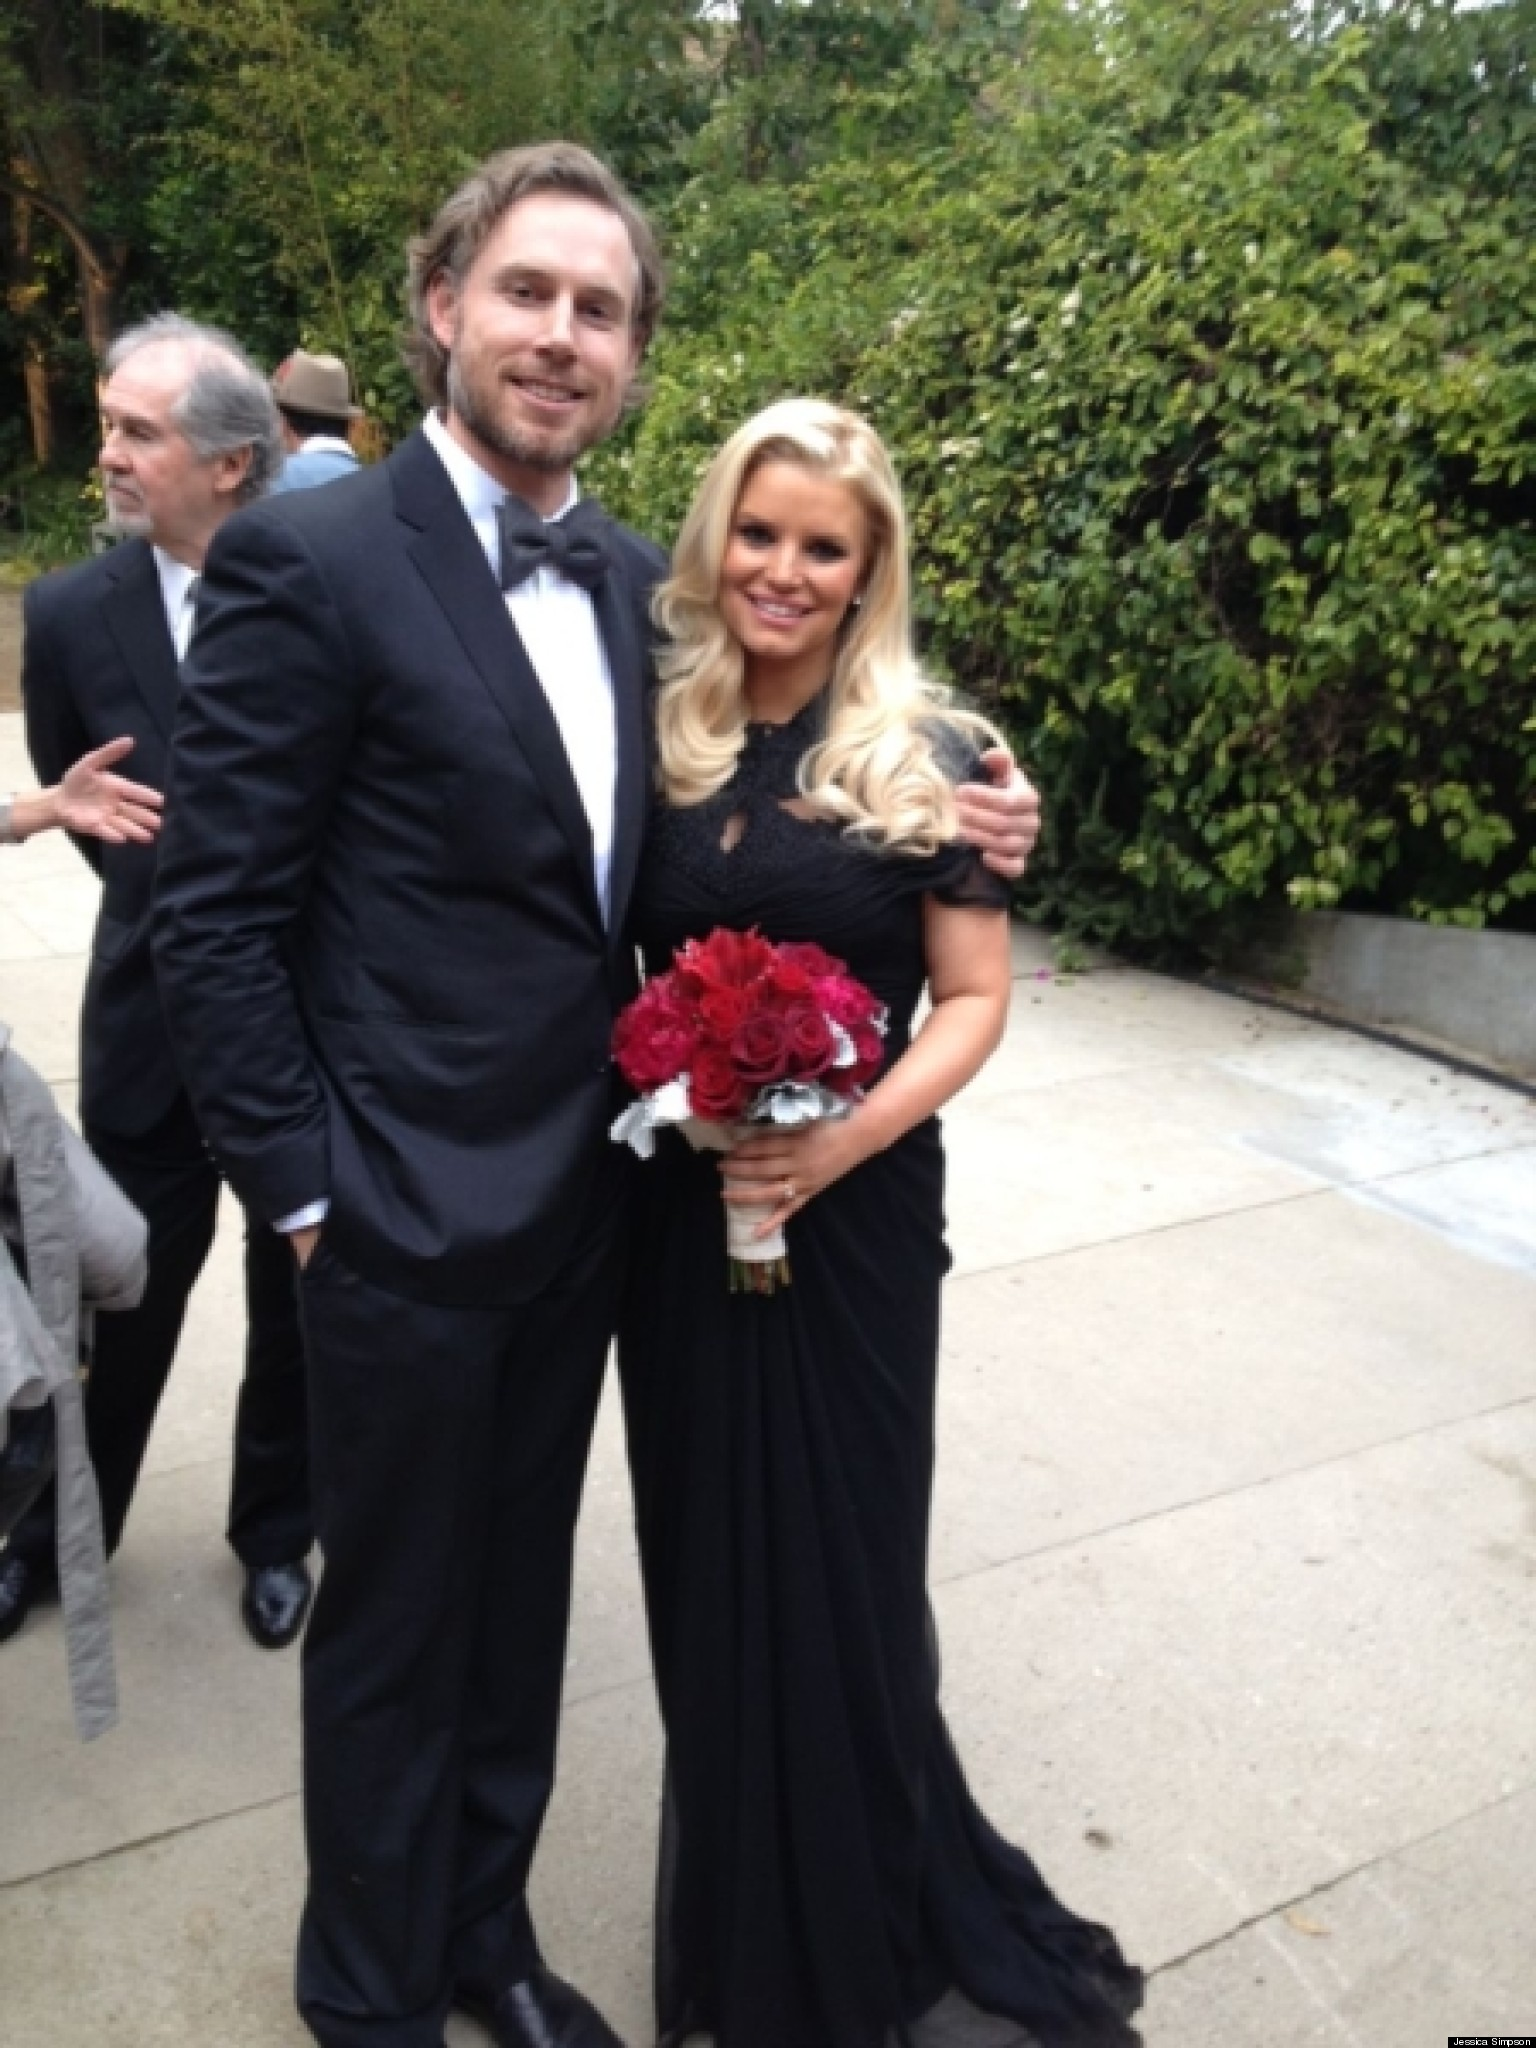 Jessica Simpson S Baby P Singer Looks Stunning At Wedding Photo Huffpost